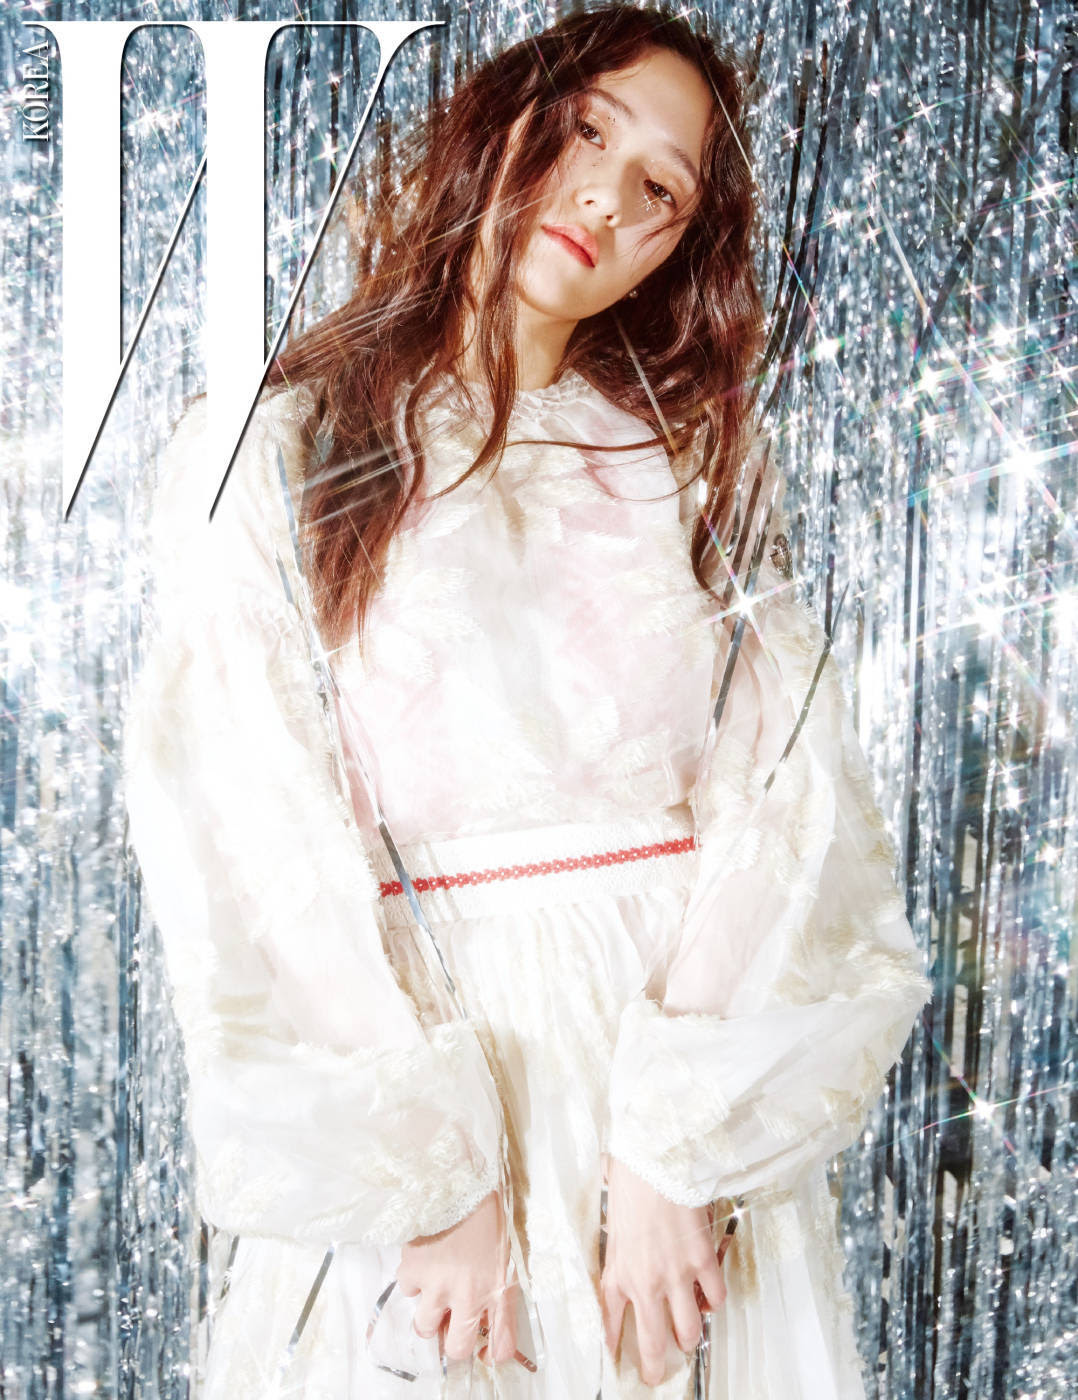 Krystal ( F(x) ) - W Magazine January Issue '17